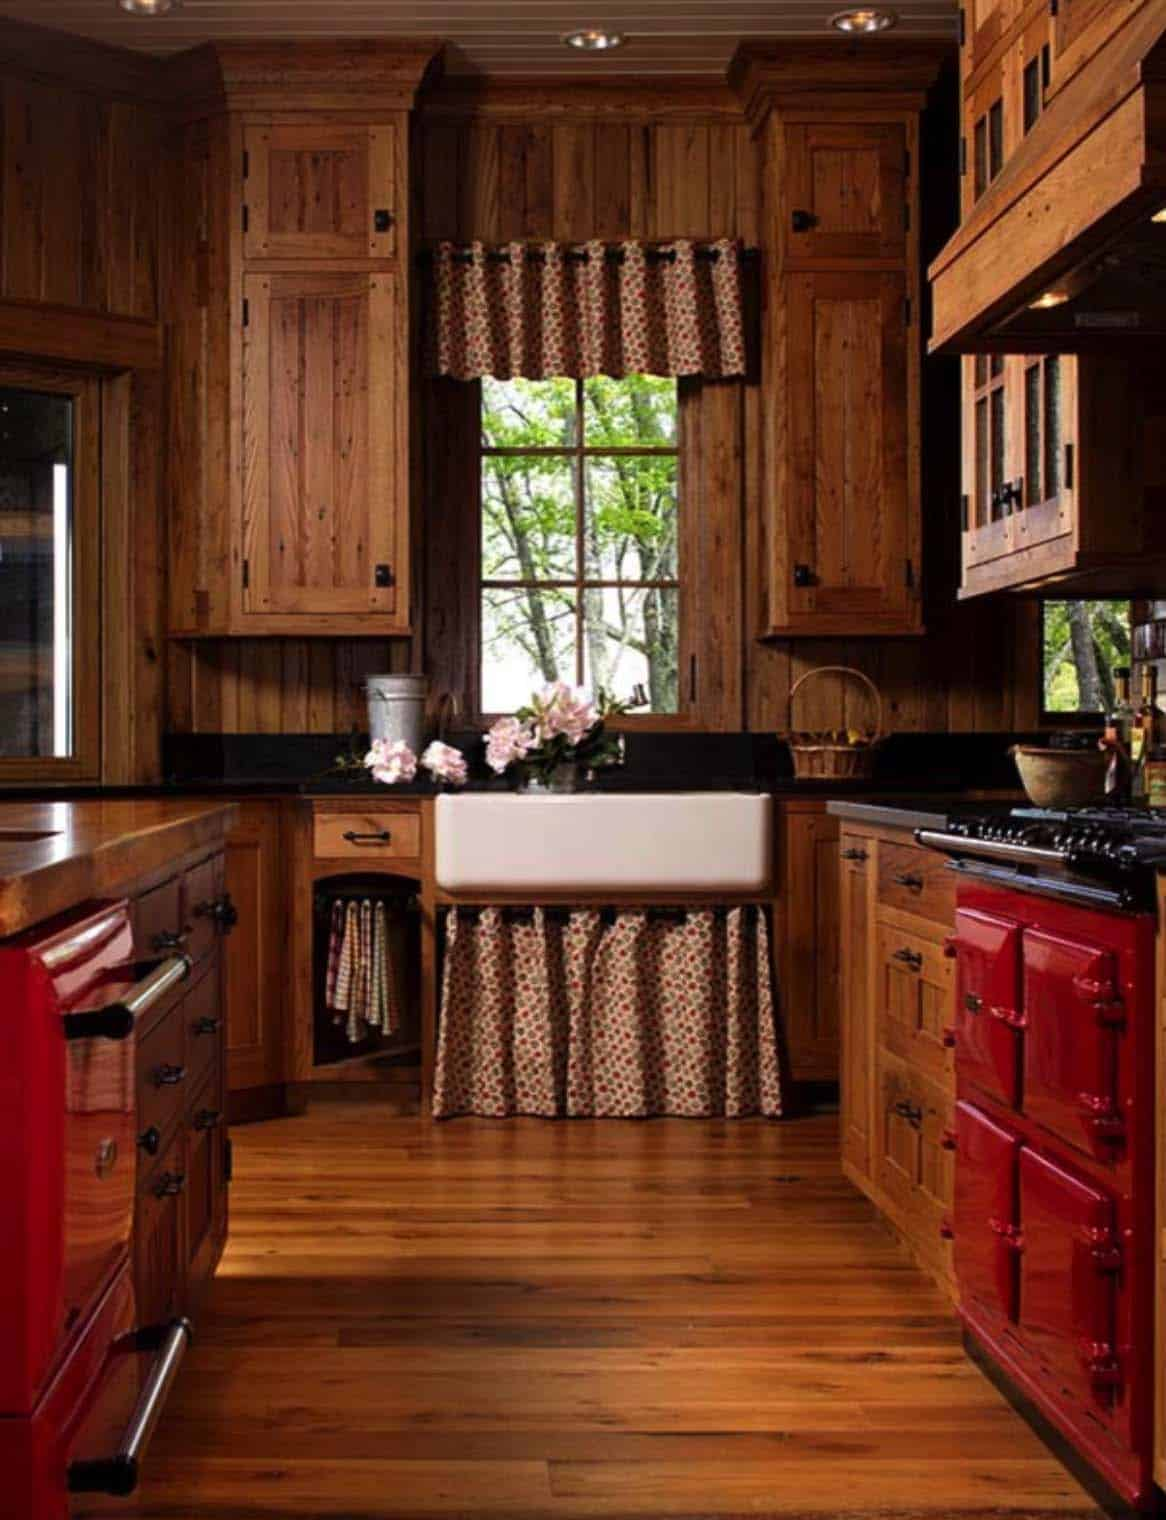 Lm Design Custom Cabinetry North Carolina ~ Dreamy cabin retreat perched on a rocky mountainside in